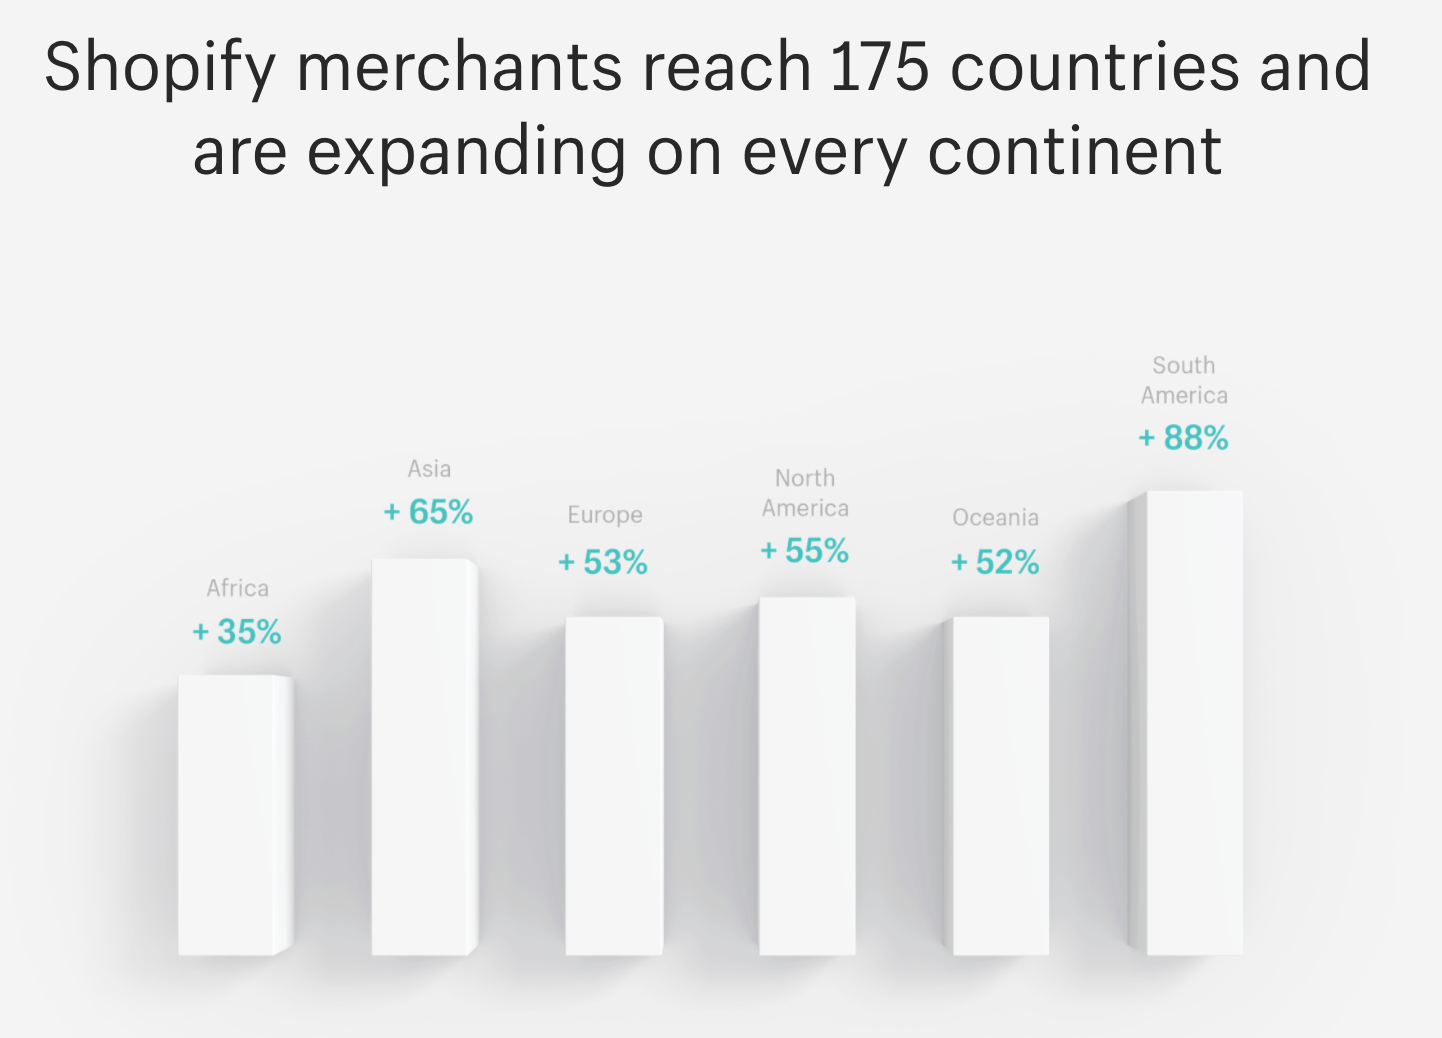 Worldwide Shopify business reach